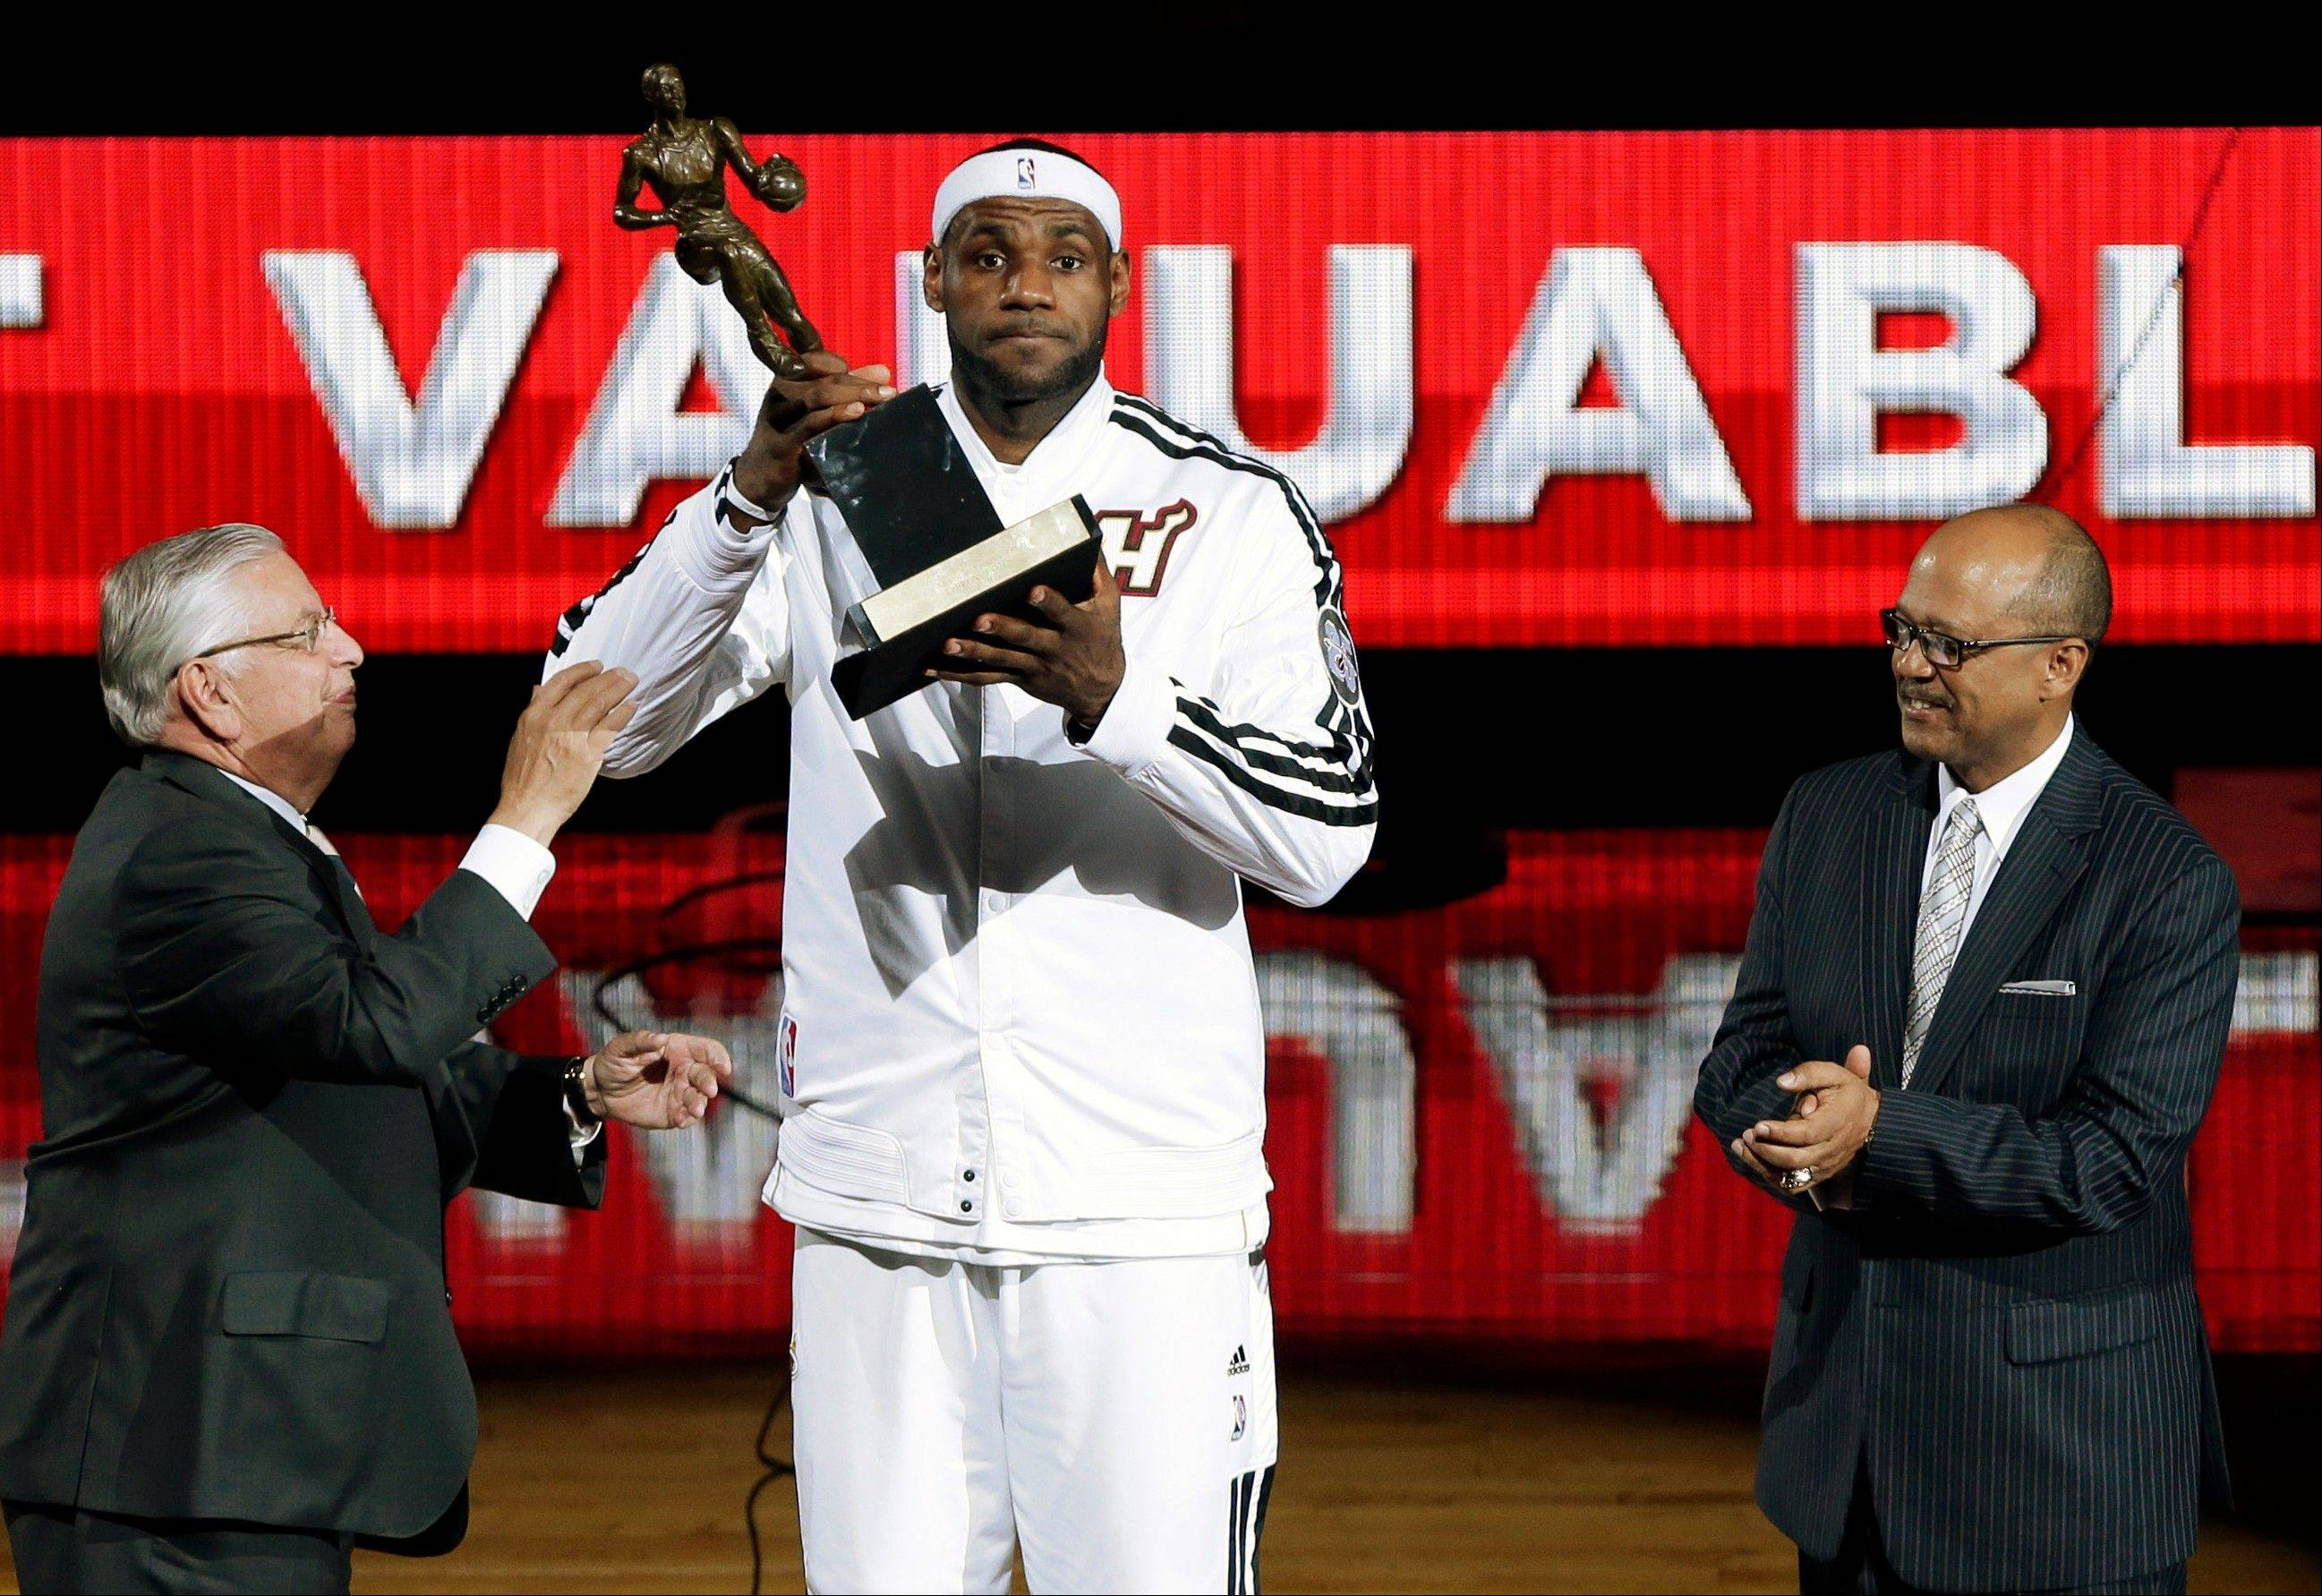 Miami Heat's LeBron James, center, holds up his MVP trophy from NBA Commissioner David Stern, left, as Kia Motors' Percy Vaughn, right, watches during a ceremony before Game 1 of their NBA basketball playoff series in the Eastern Conference semifinals, Monday, May 6, 2013, in Miami.